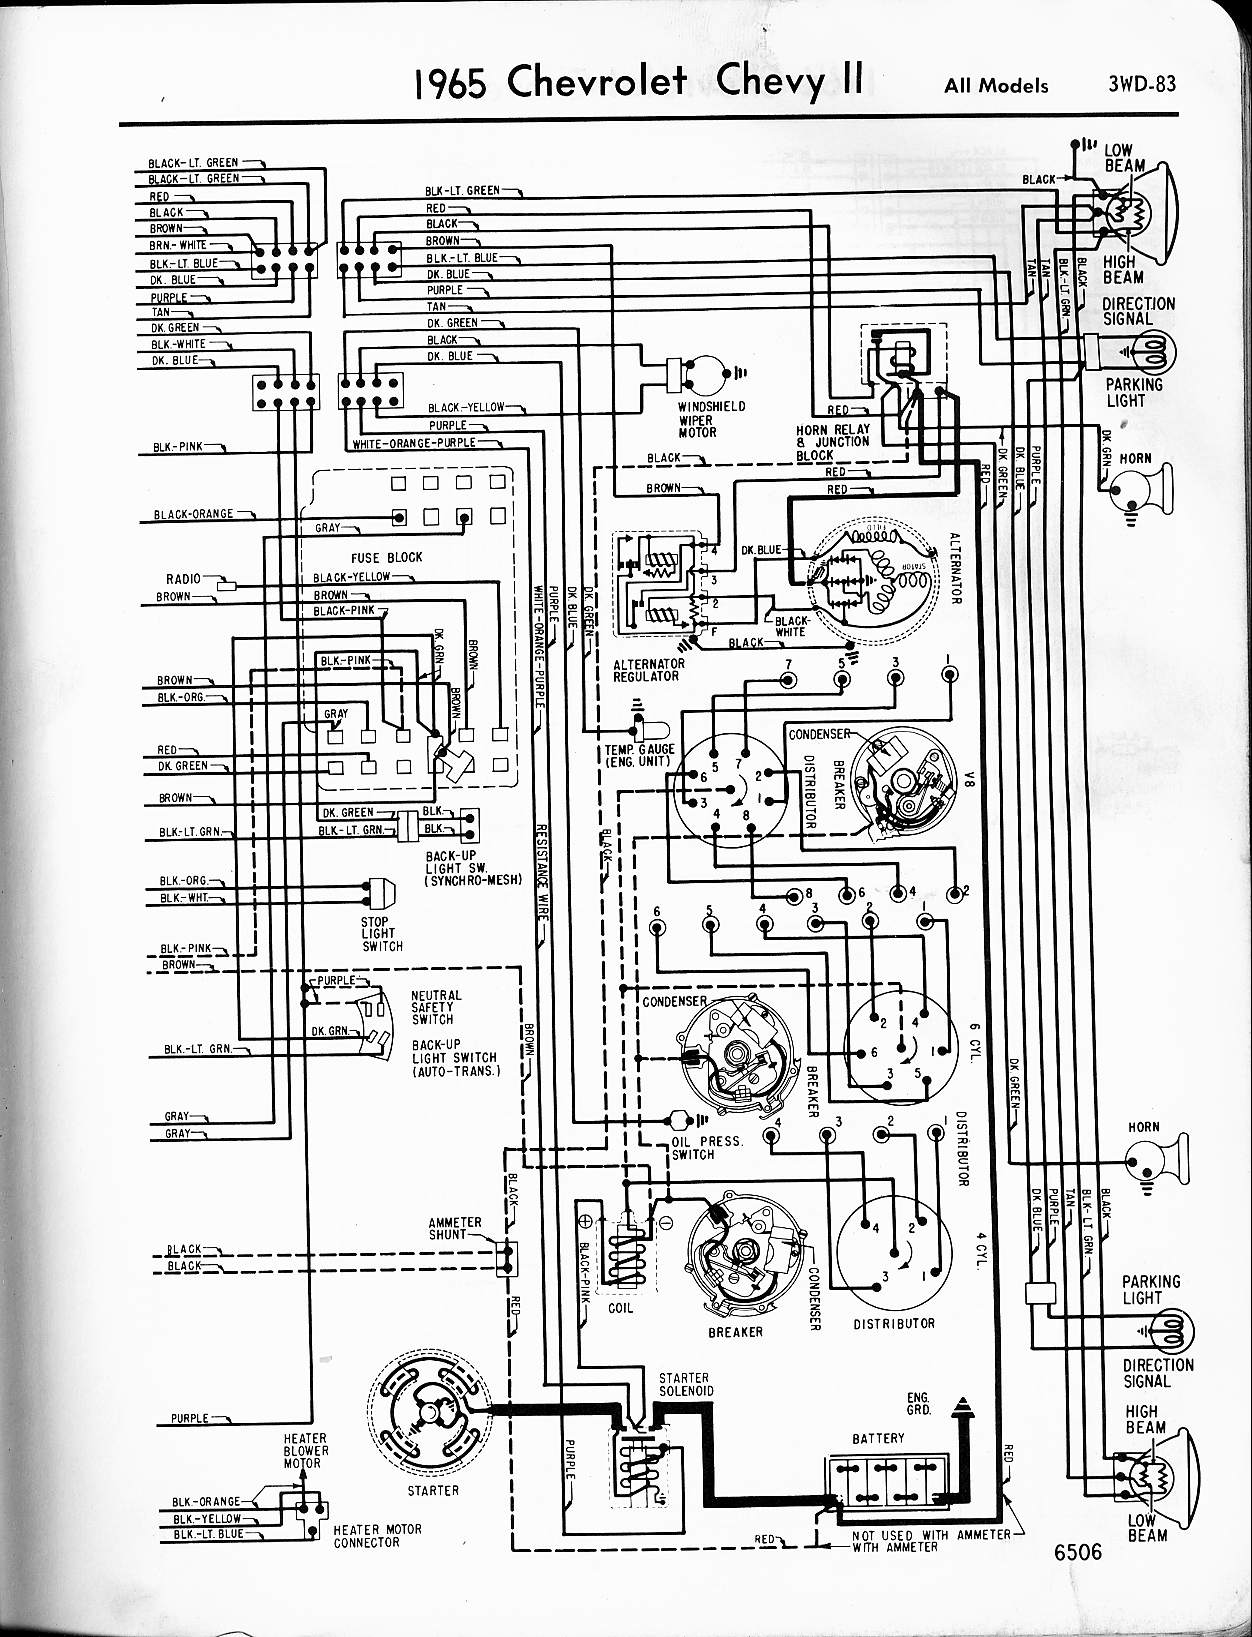 65 Corvette Dash Wiring Diagram - Wiring Diagram wave-activity -  wave-activity.fornacidelpianalto.it | 1965 Corvette Instrument Wiring Diagram |  | fornacidelpianalto.it